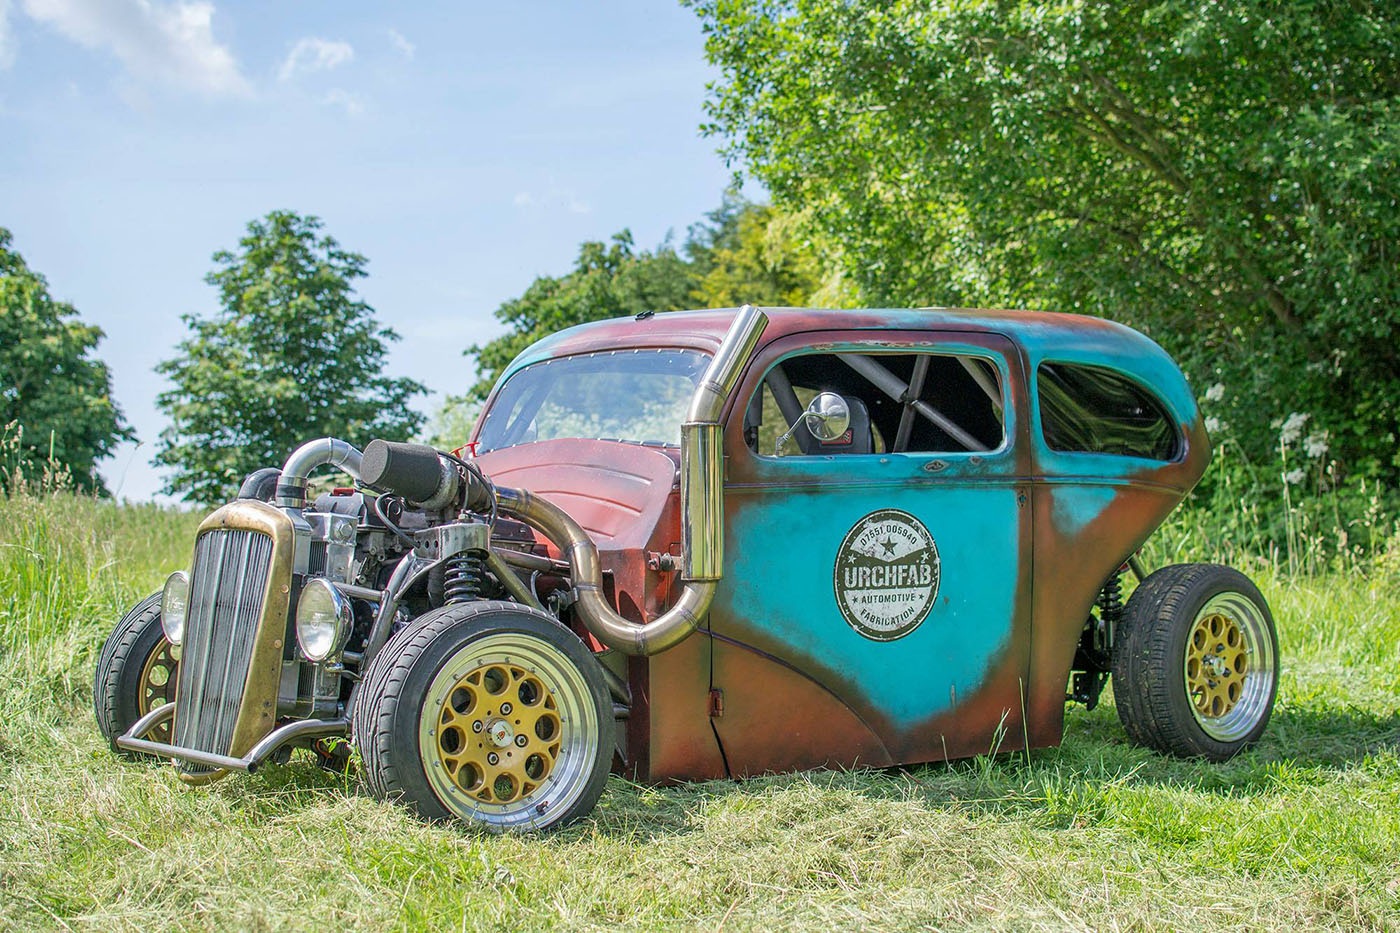 Drift Rod Created From A 1953 Ford Popular Body And A Saab